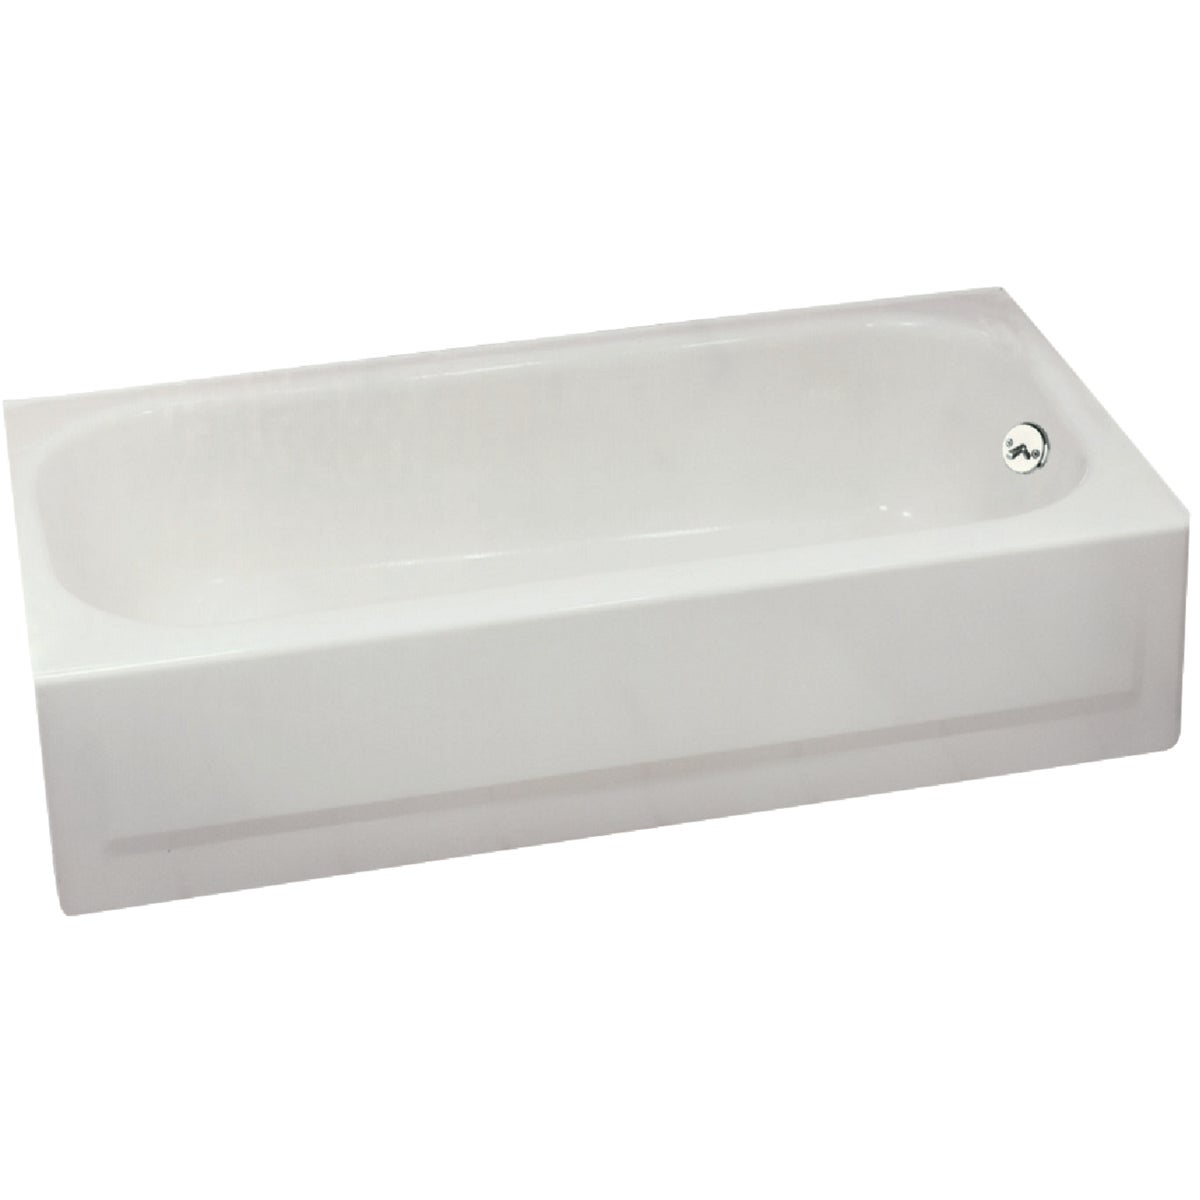 BONE R/H TUB - 2504-733-01 by Briggs